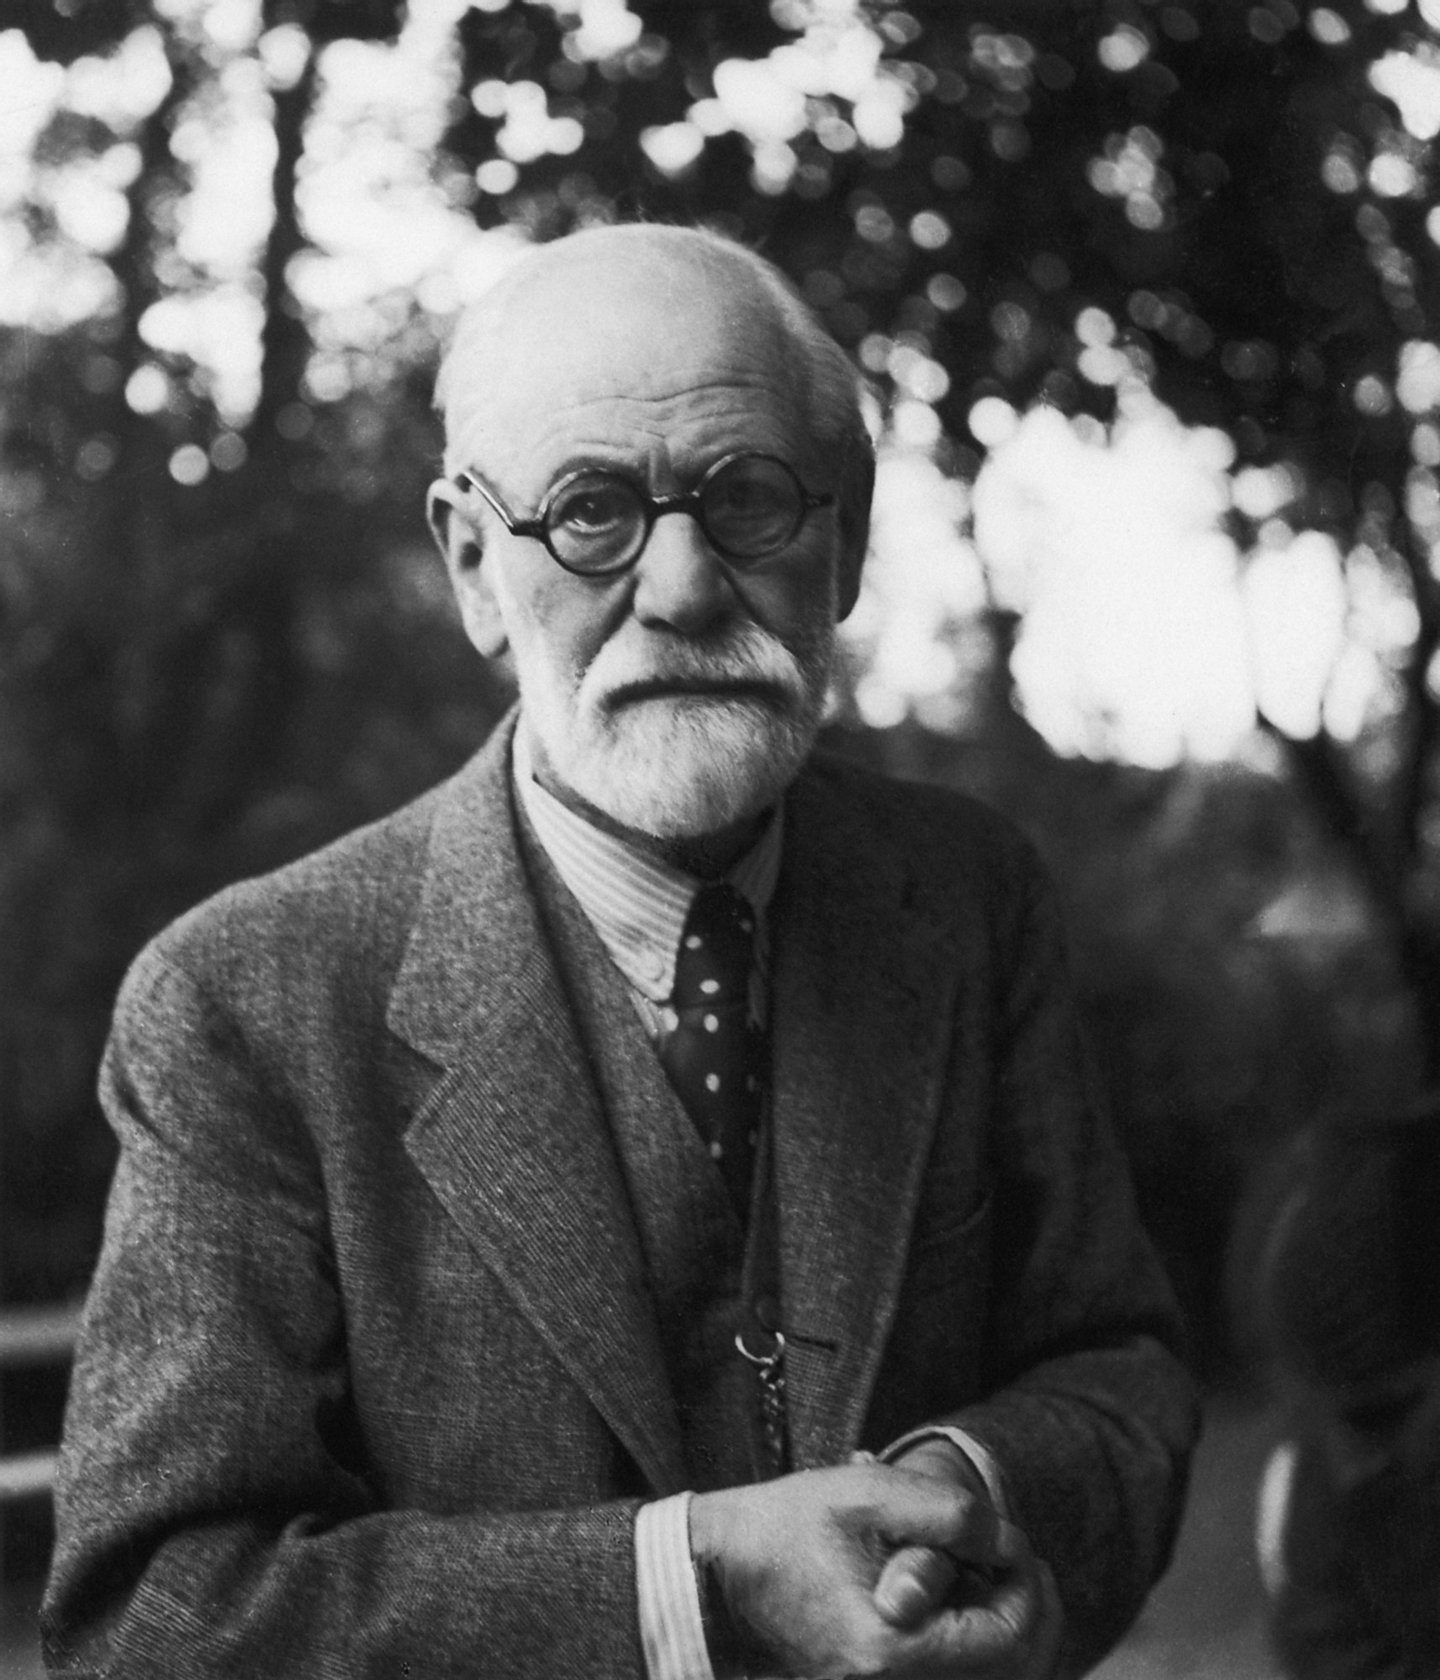 circa 1935:  Sigmund Freud (1856 - 1939) the neurologist and founder of psychoanalysis.  (Photo by Hans Casparius/Hulton Archive/Getty Images)